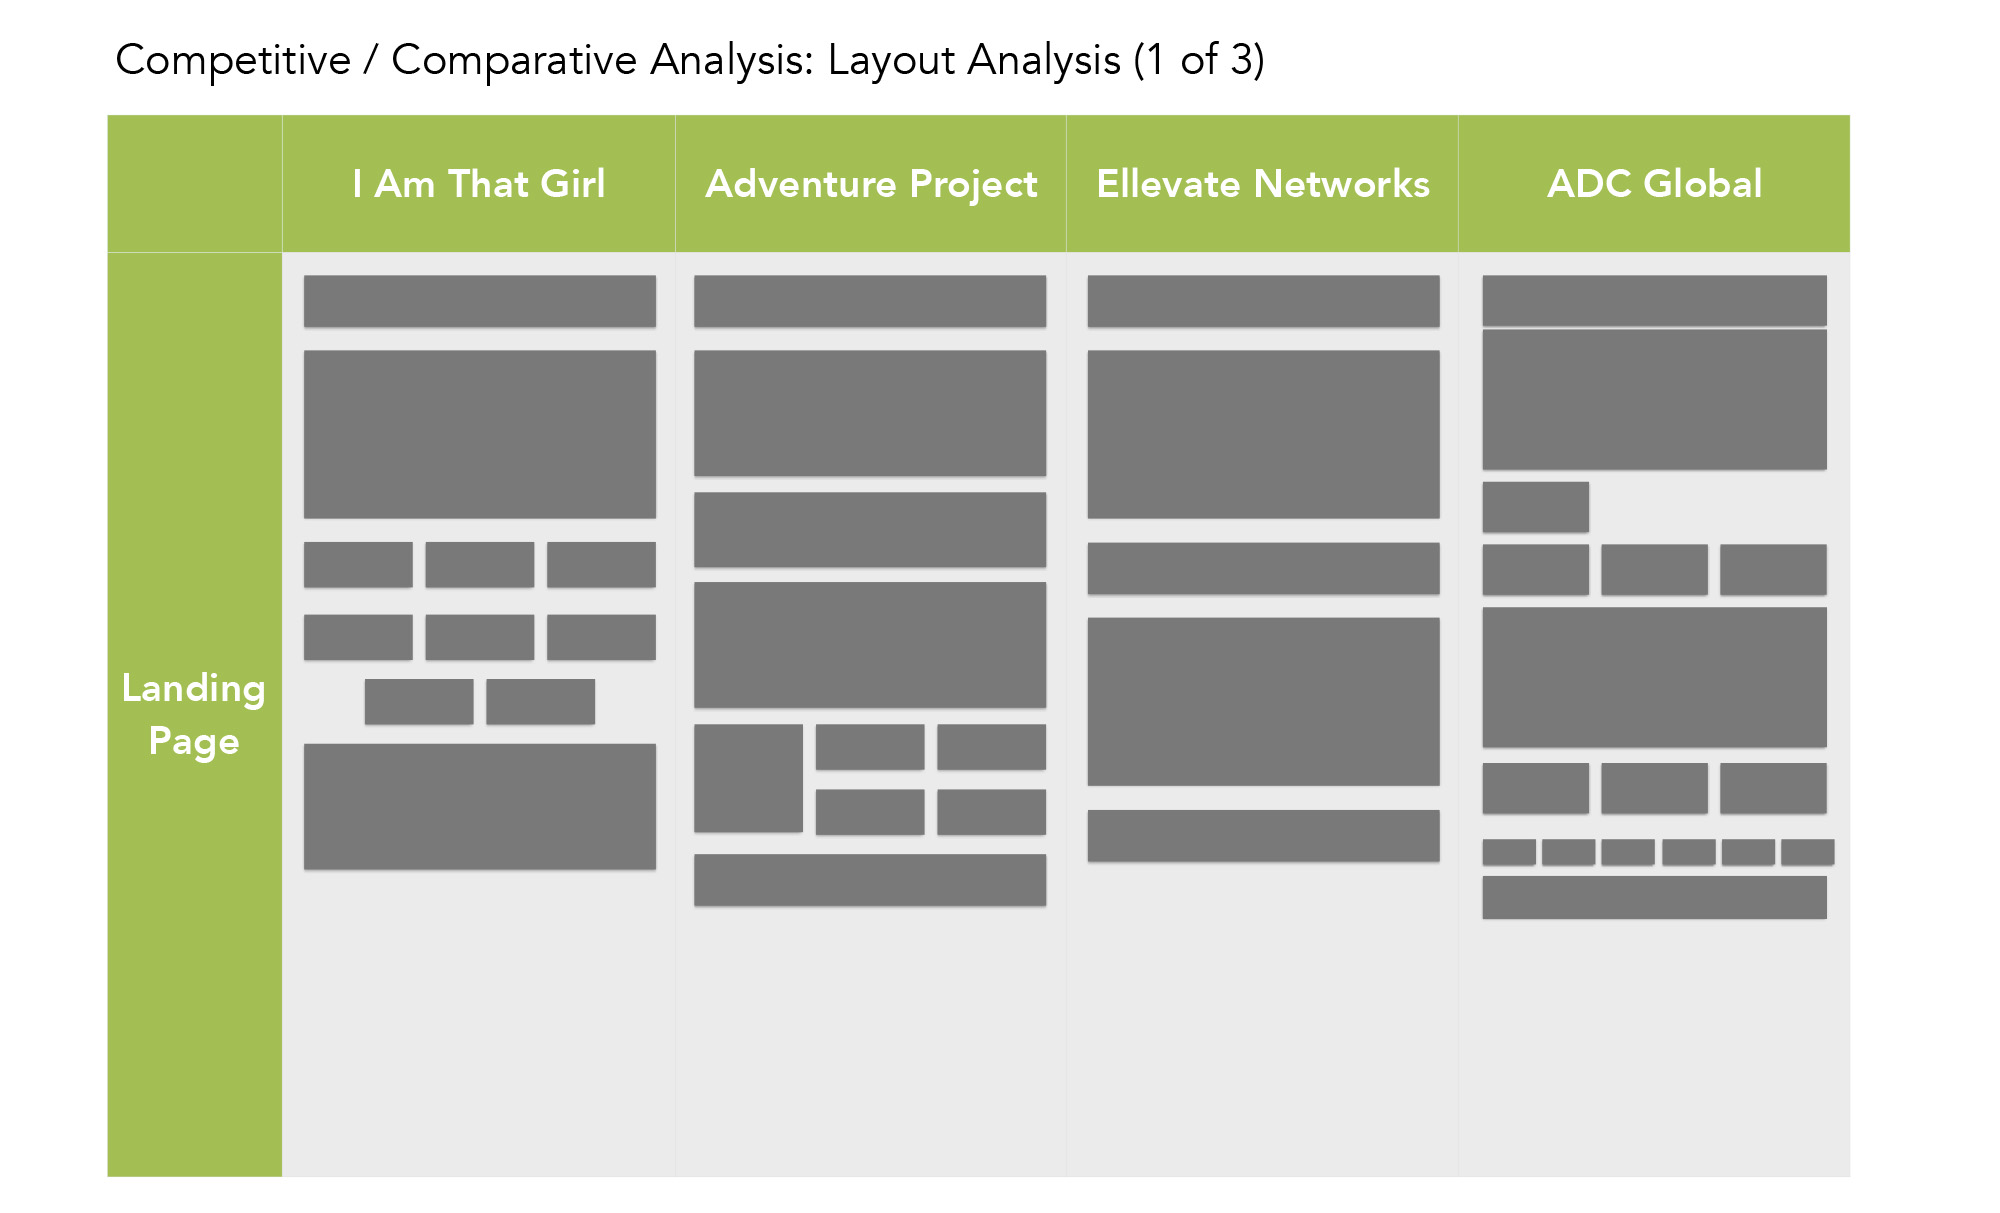 NYWSE_Competitive_Analysis_092616_0002_NYWSE_Deliverables 21.jpg